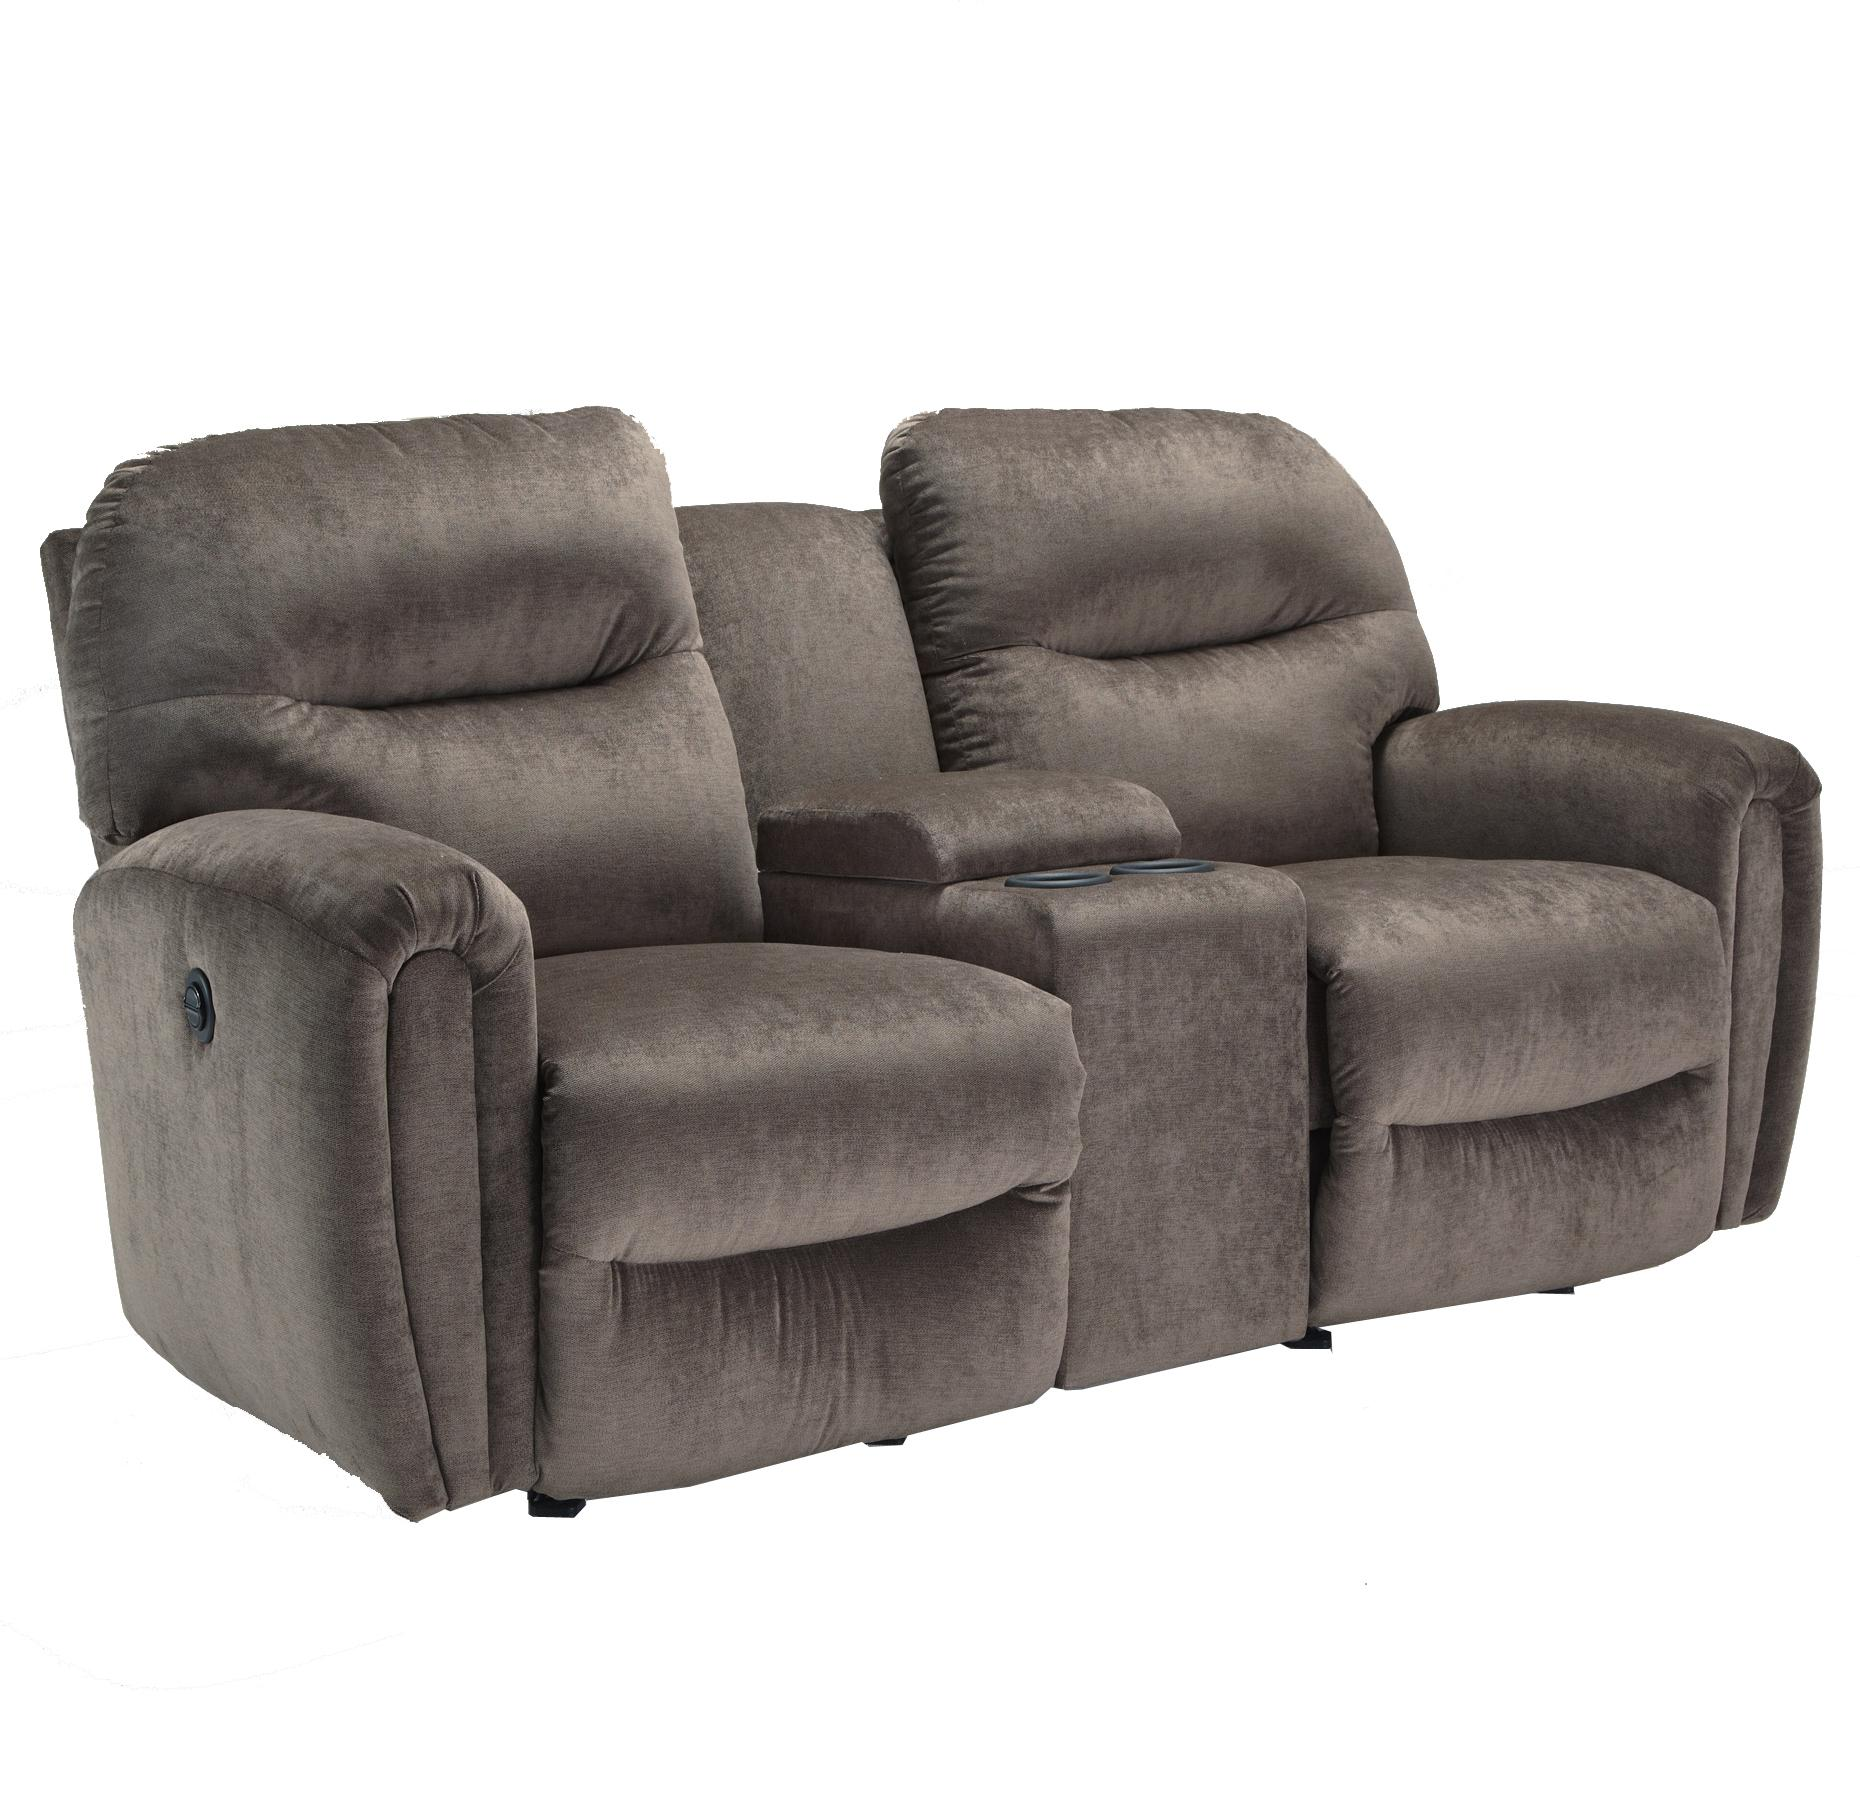 Best Home Furnishings Markson Rocker Console Loveseat - Item Number: L860RC7